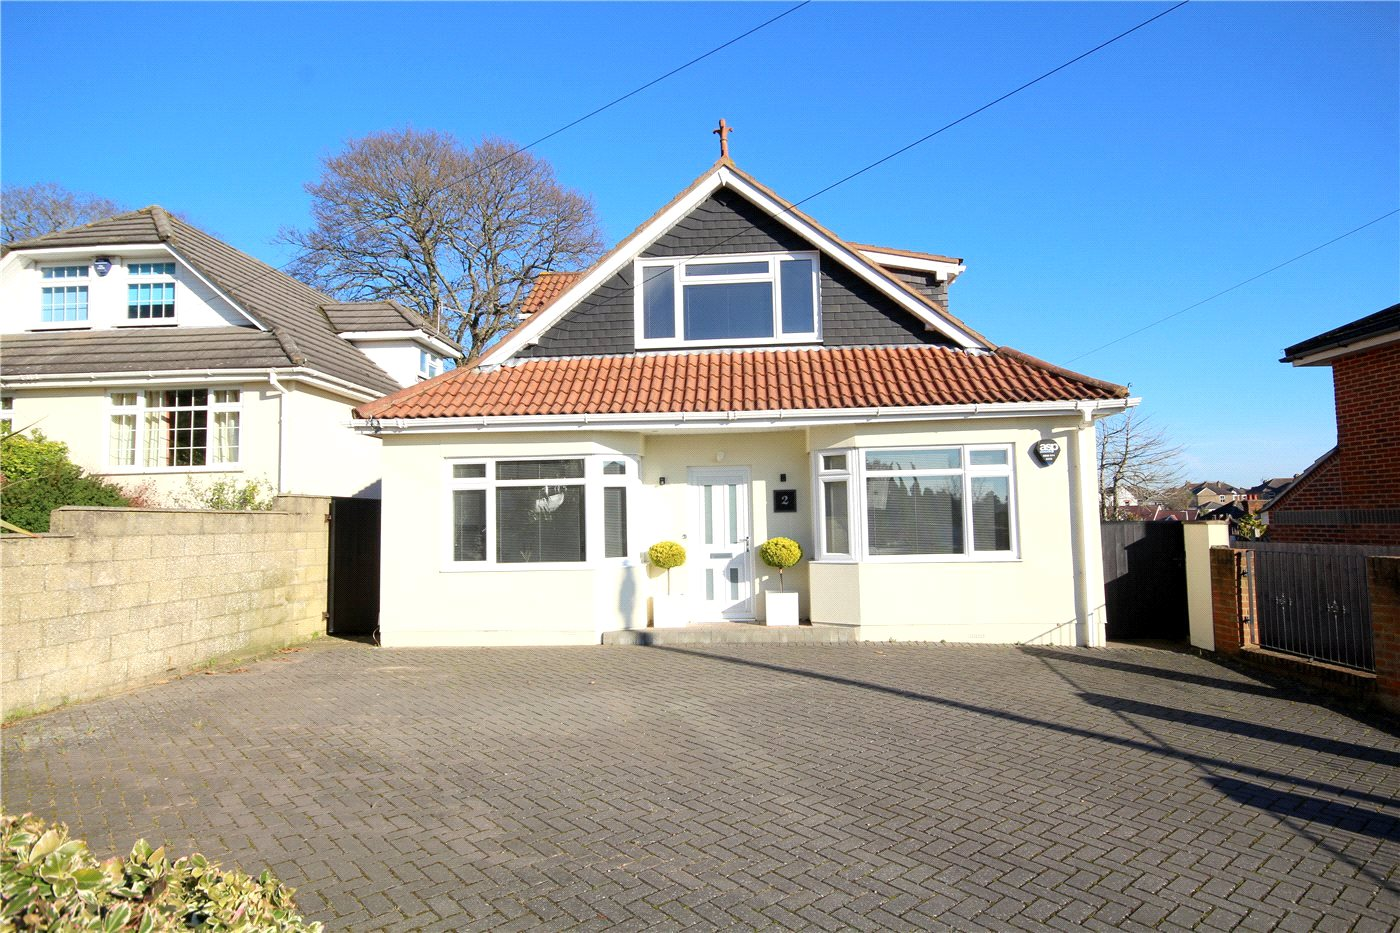 3 Bedrooms Detached House for sale in Crescent Road, Lower Parkstone, Poole, Dorset, BH14